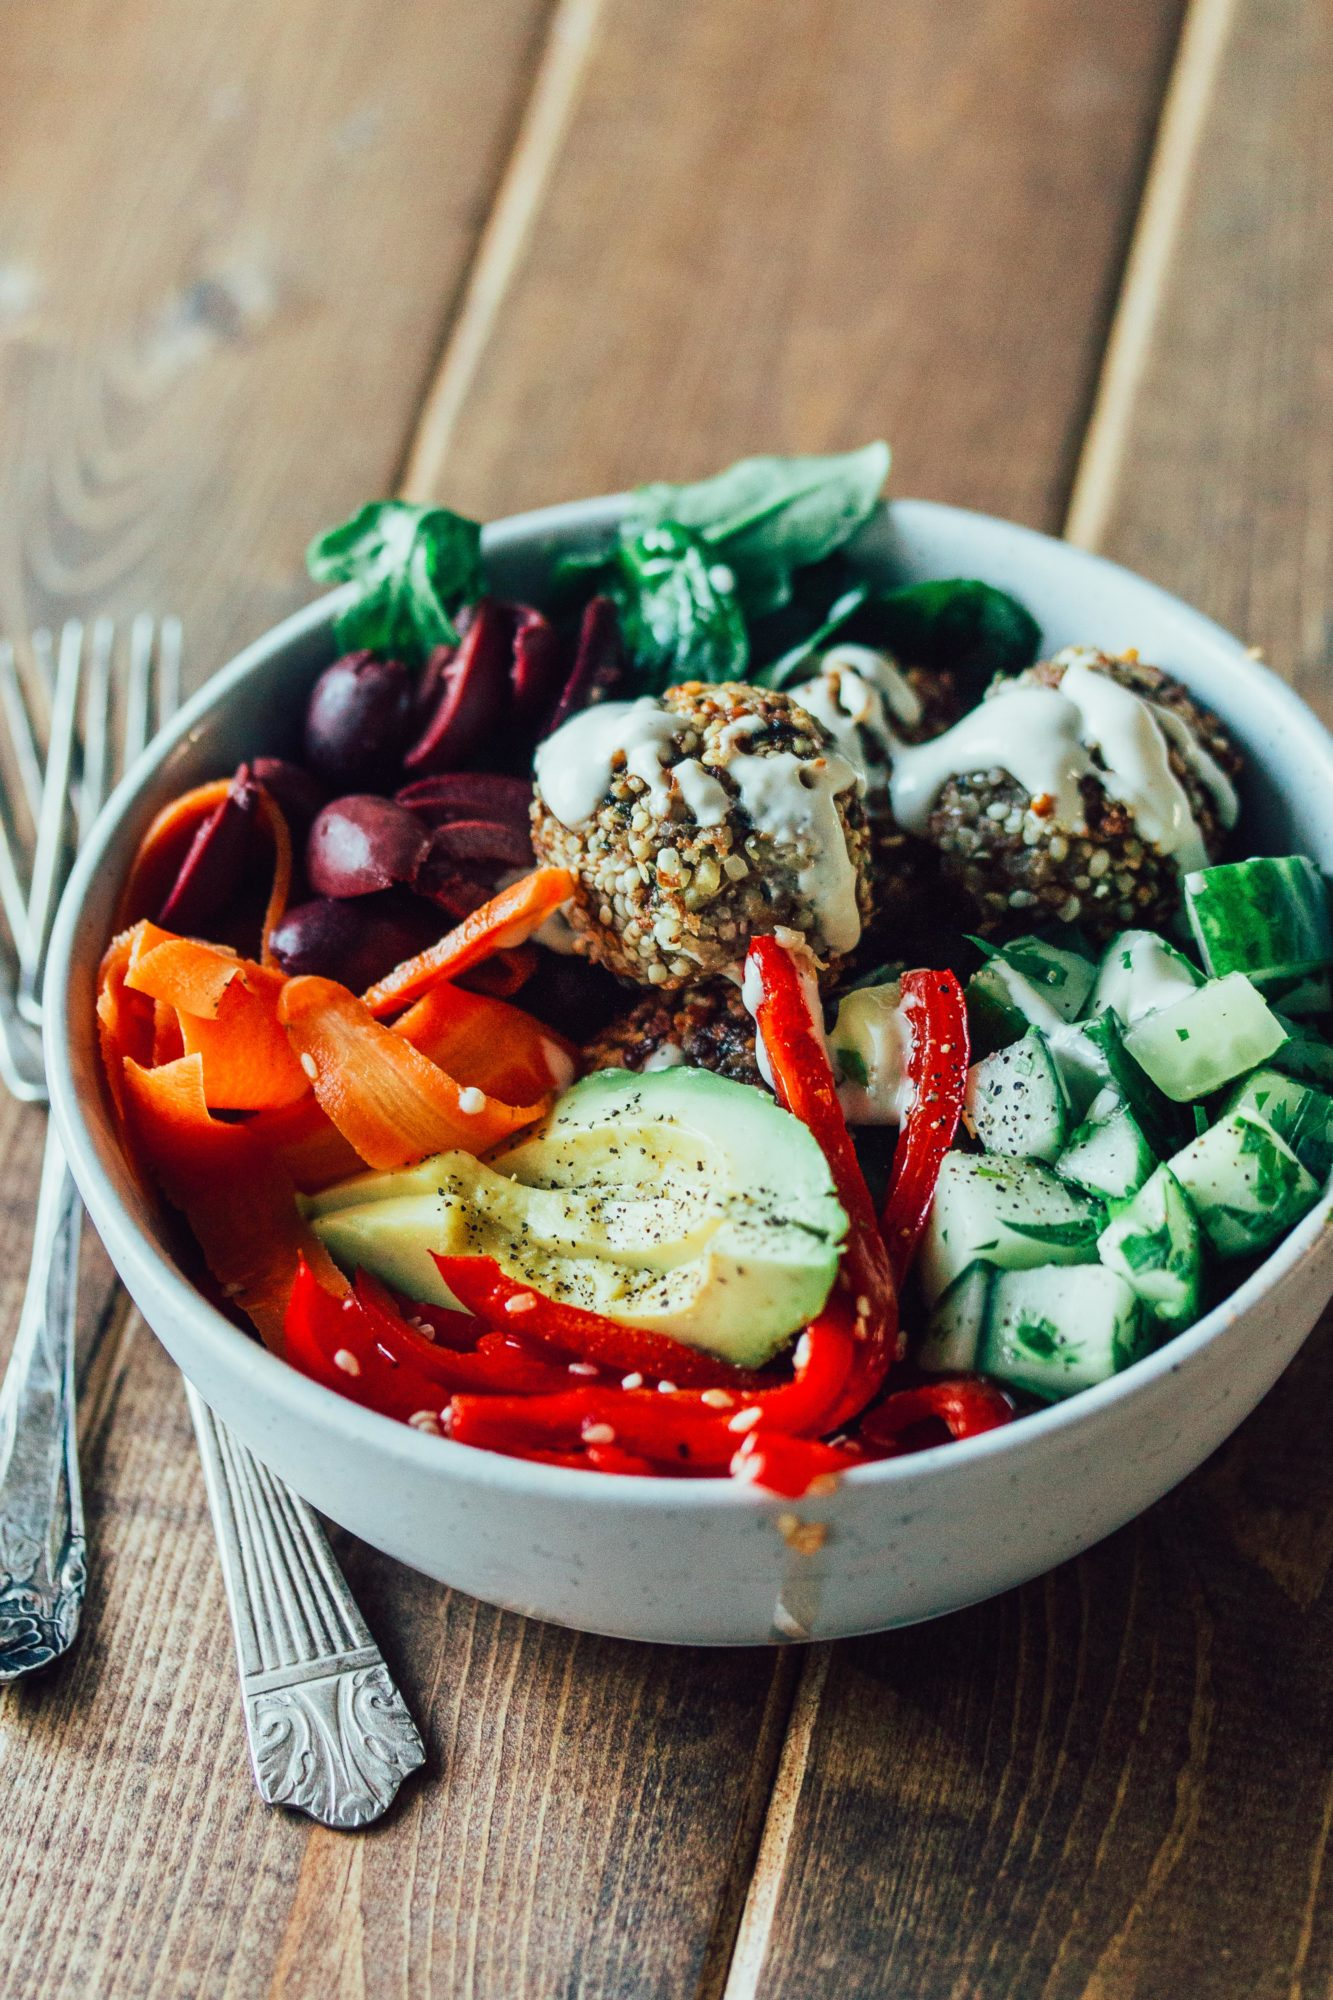 Paleo Falafel Bowl with Tahini Dressing, a great paleo, healthy, gluten-free, dairy-free, whole30 recipe.